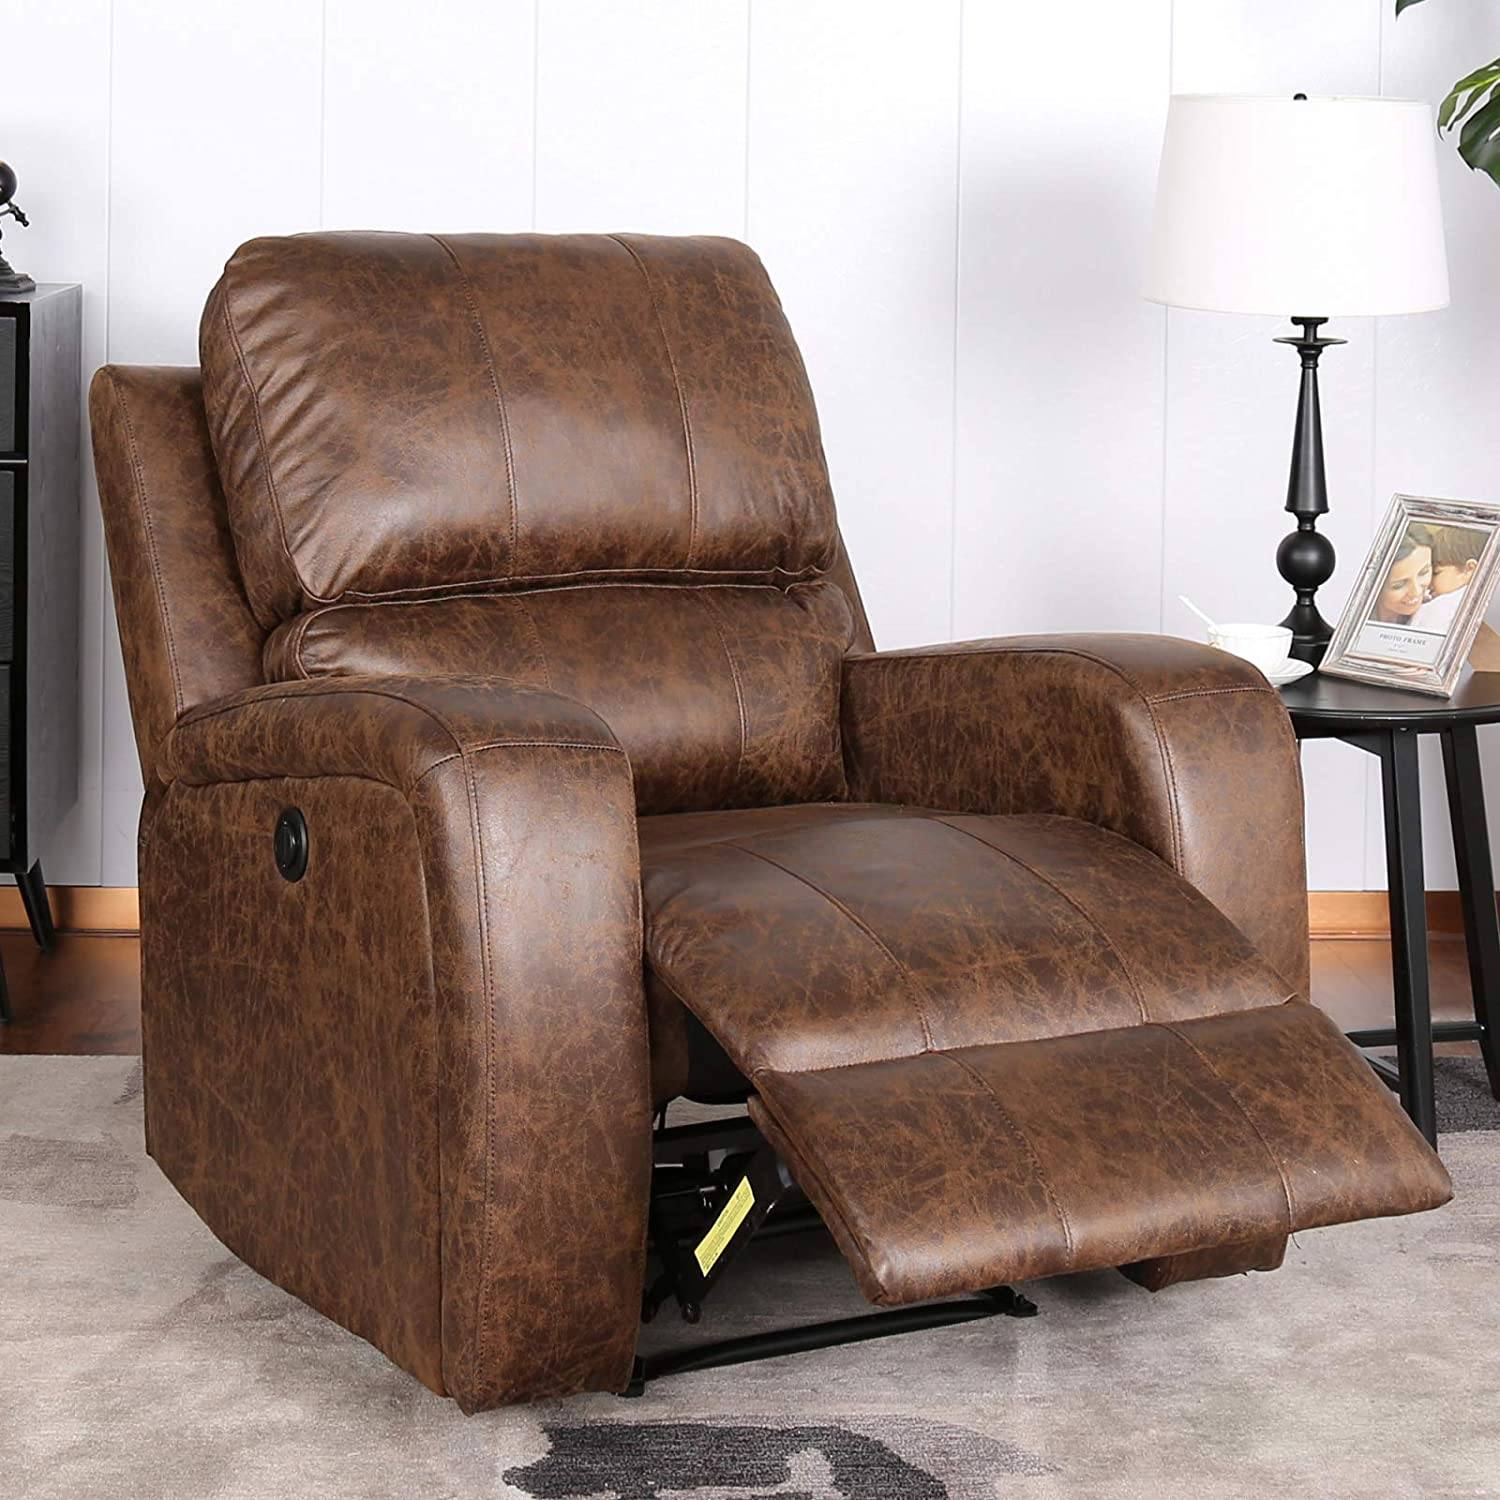 PovKeever Power Electric Bonded PU Leather Recliner Chair with USB Charge Port, Vintage Home Theater Seating,Classic Single Sofa Seat-Nut Brown